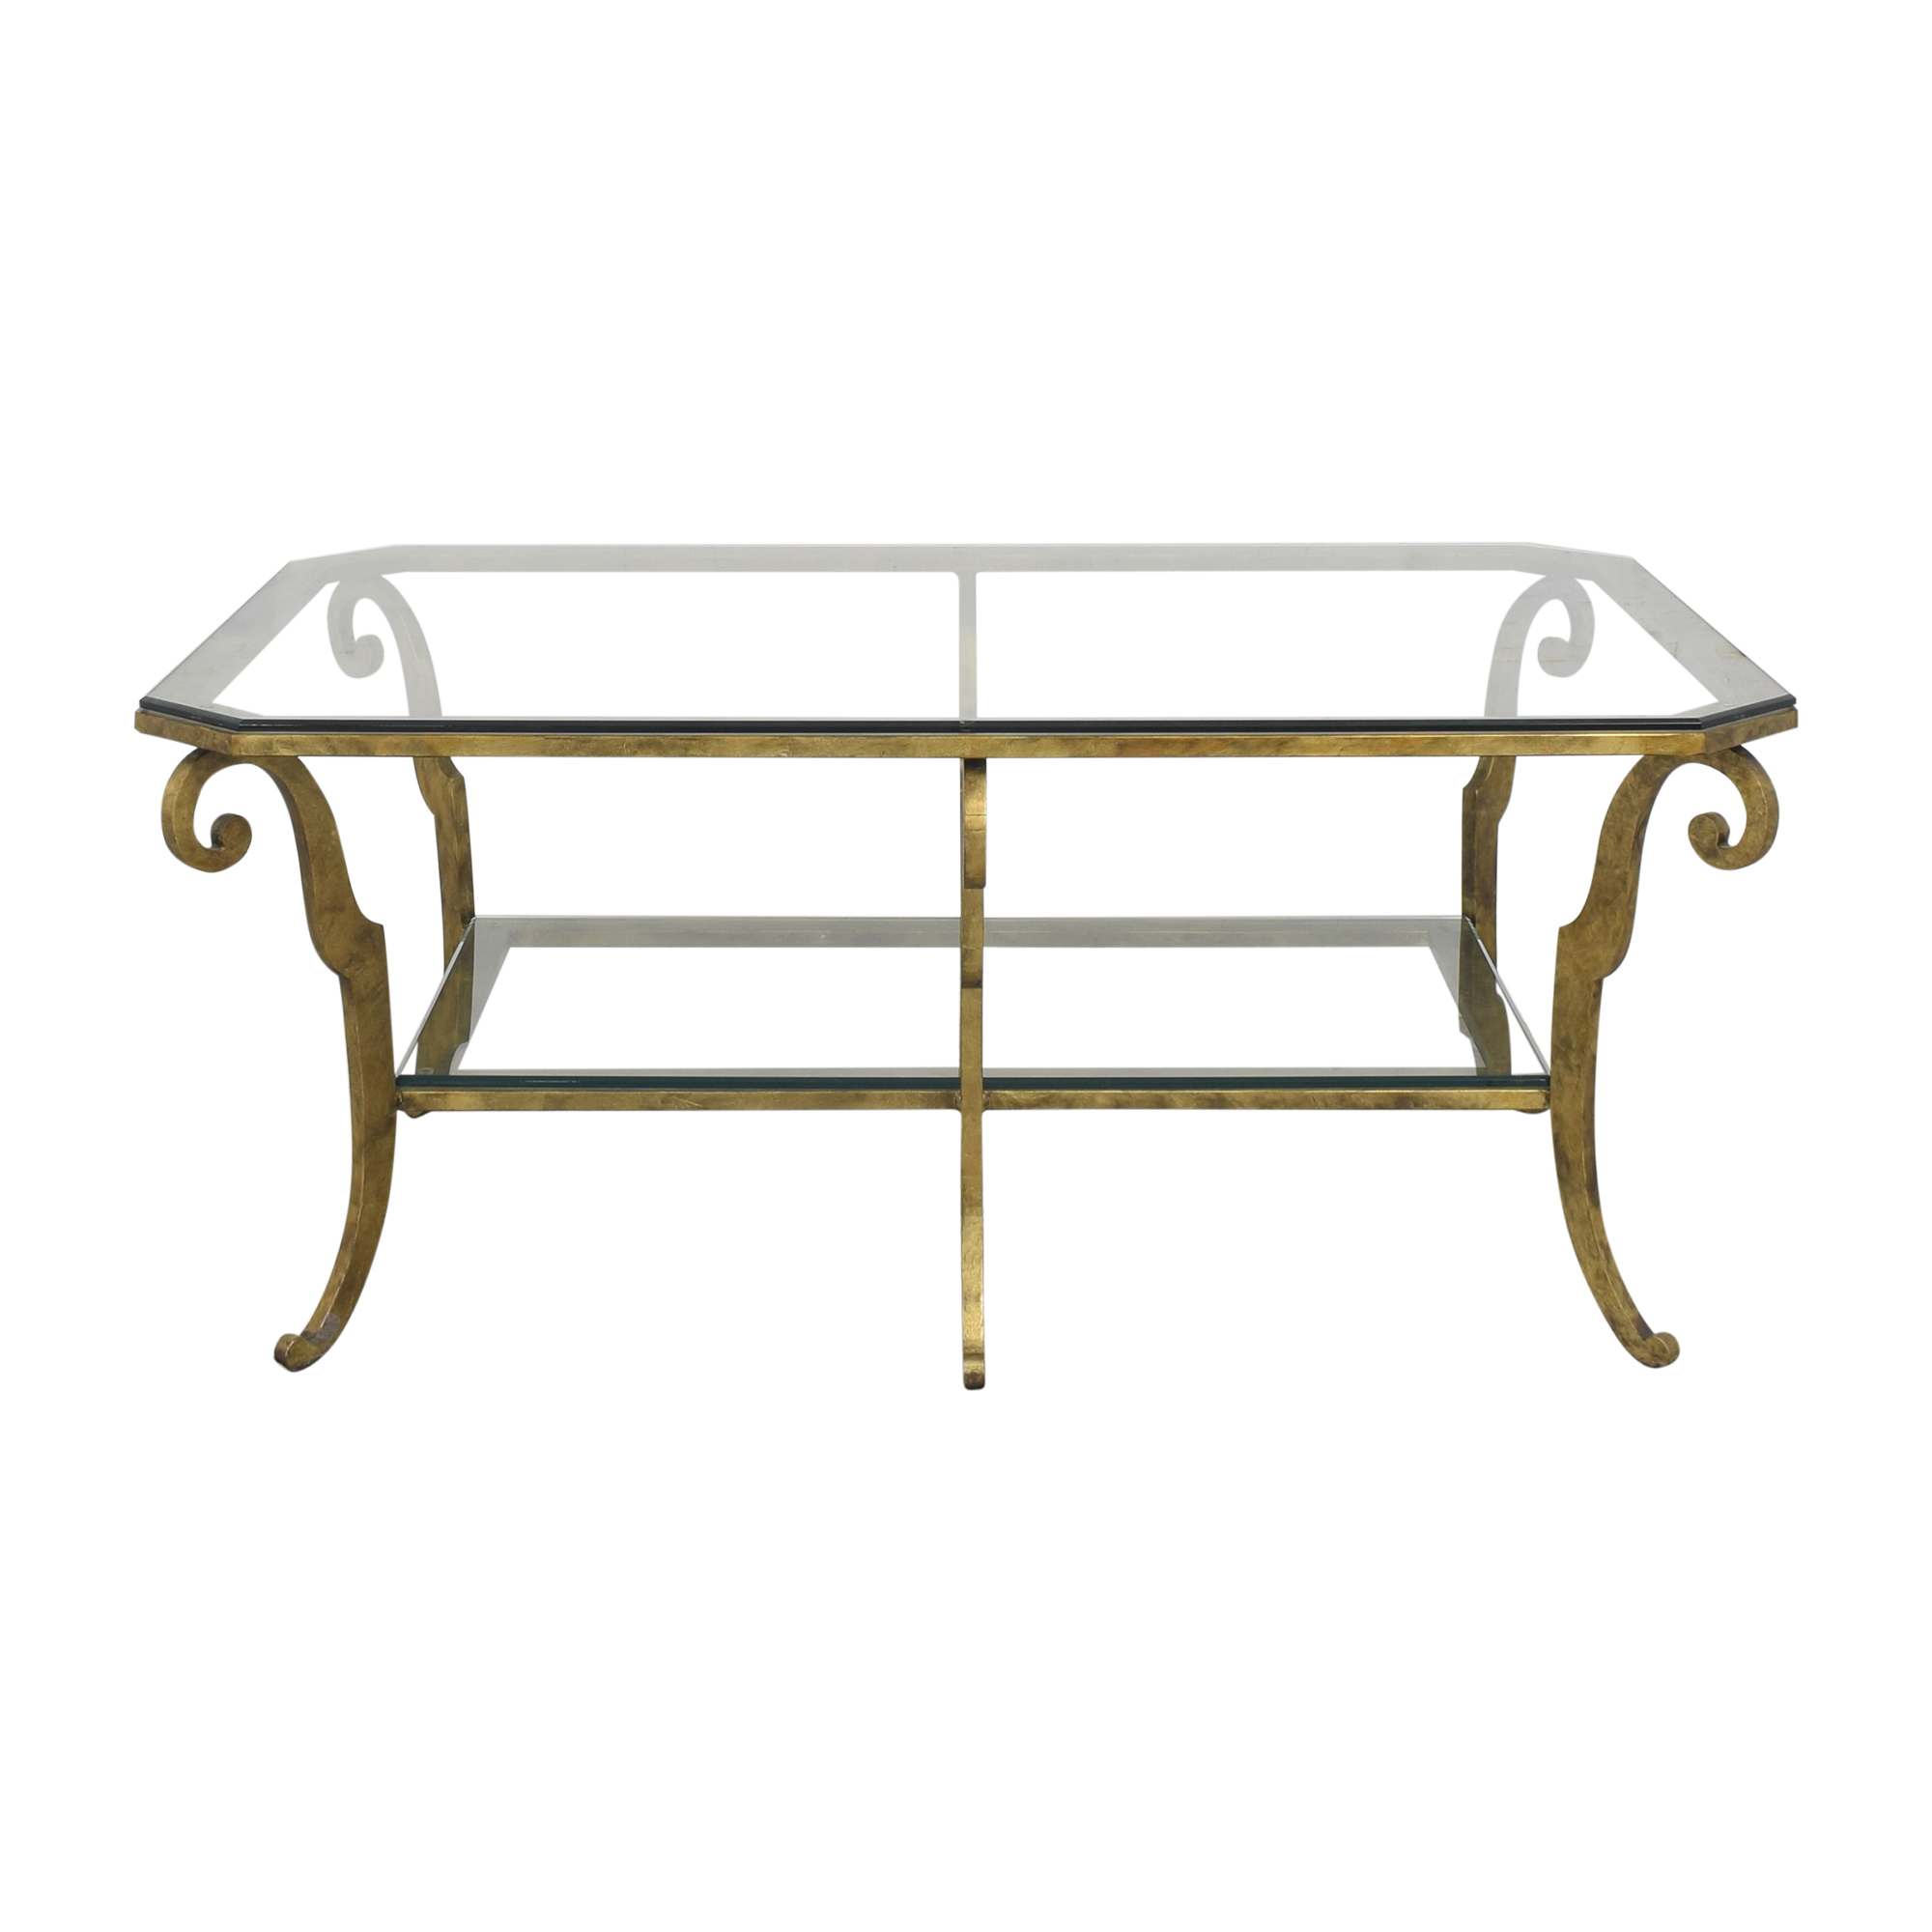 Ethan Allen Ethan Allen Two Tier Scrolled Cocktail Table coupon